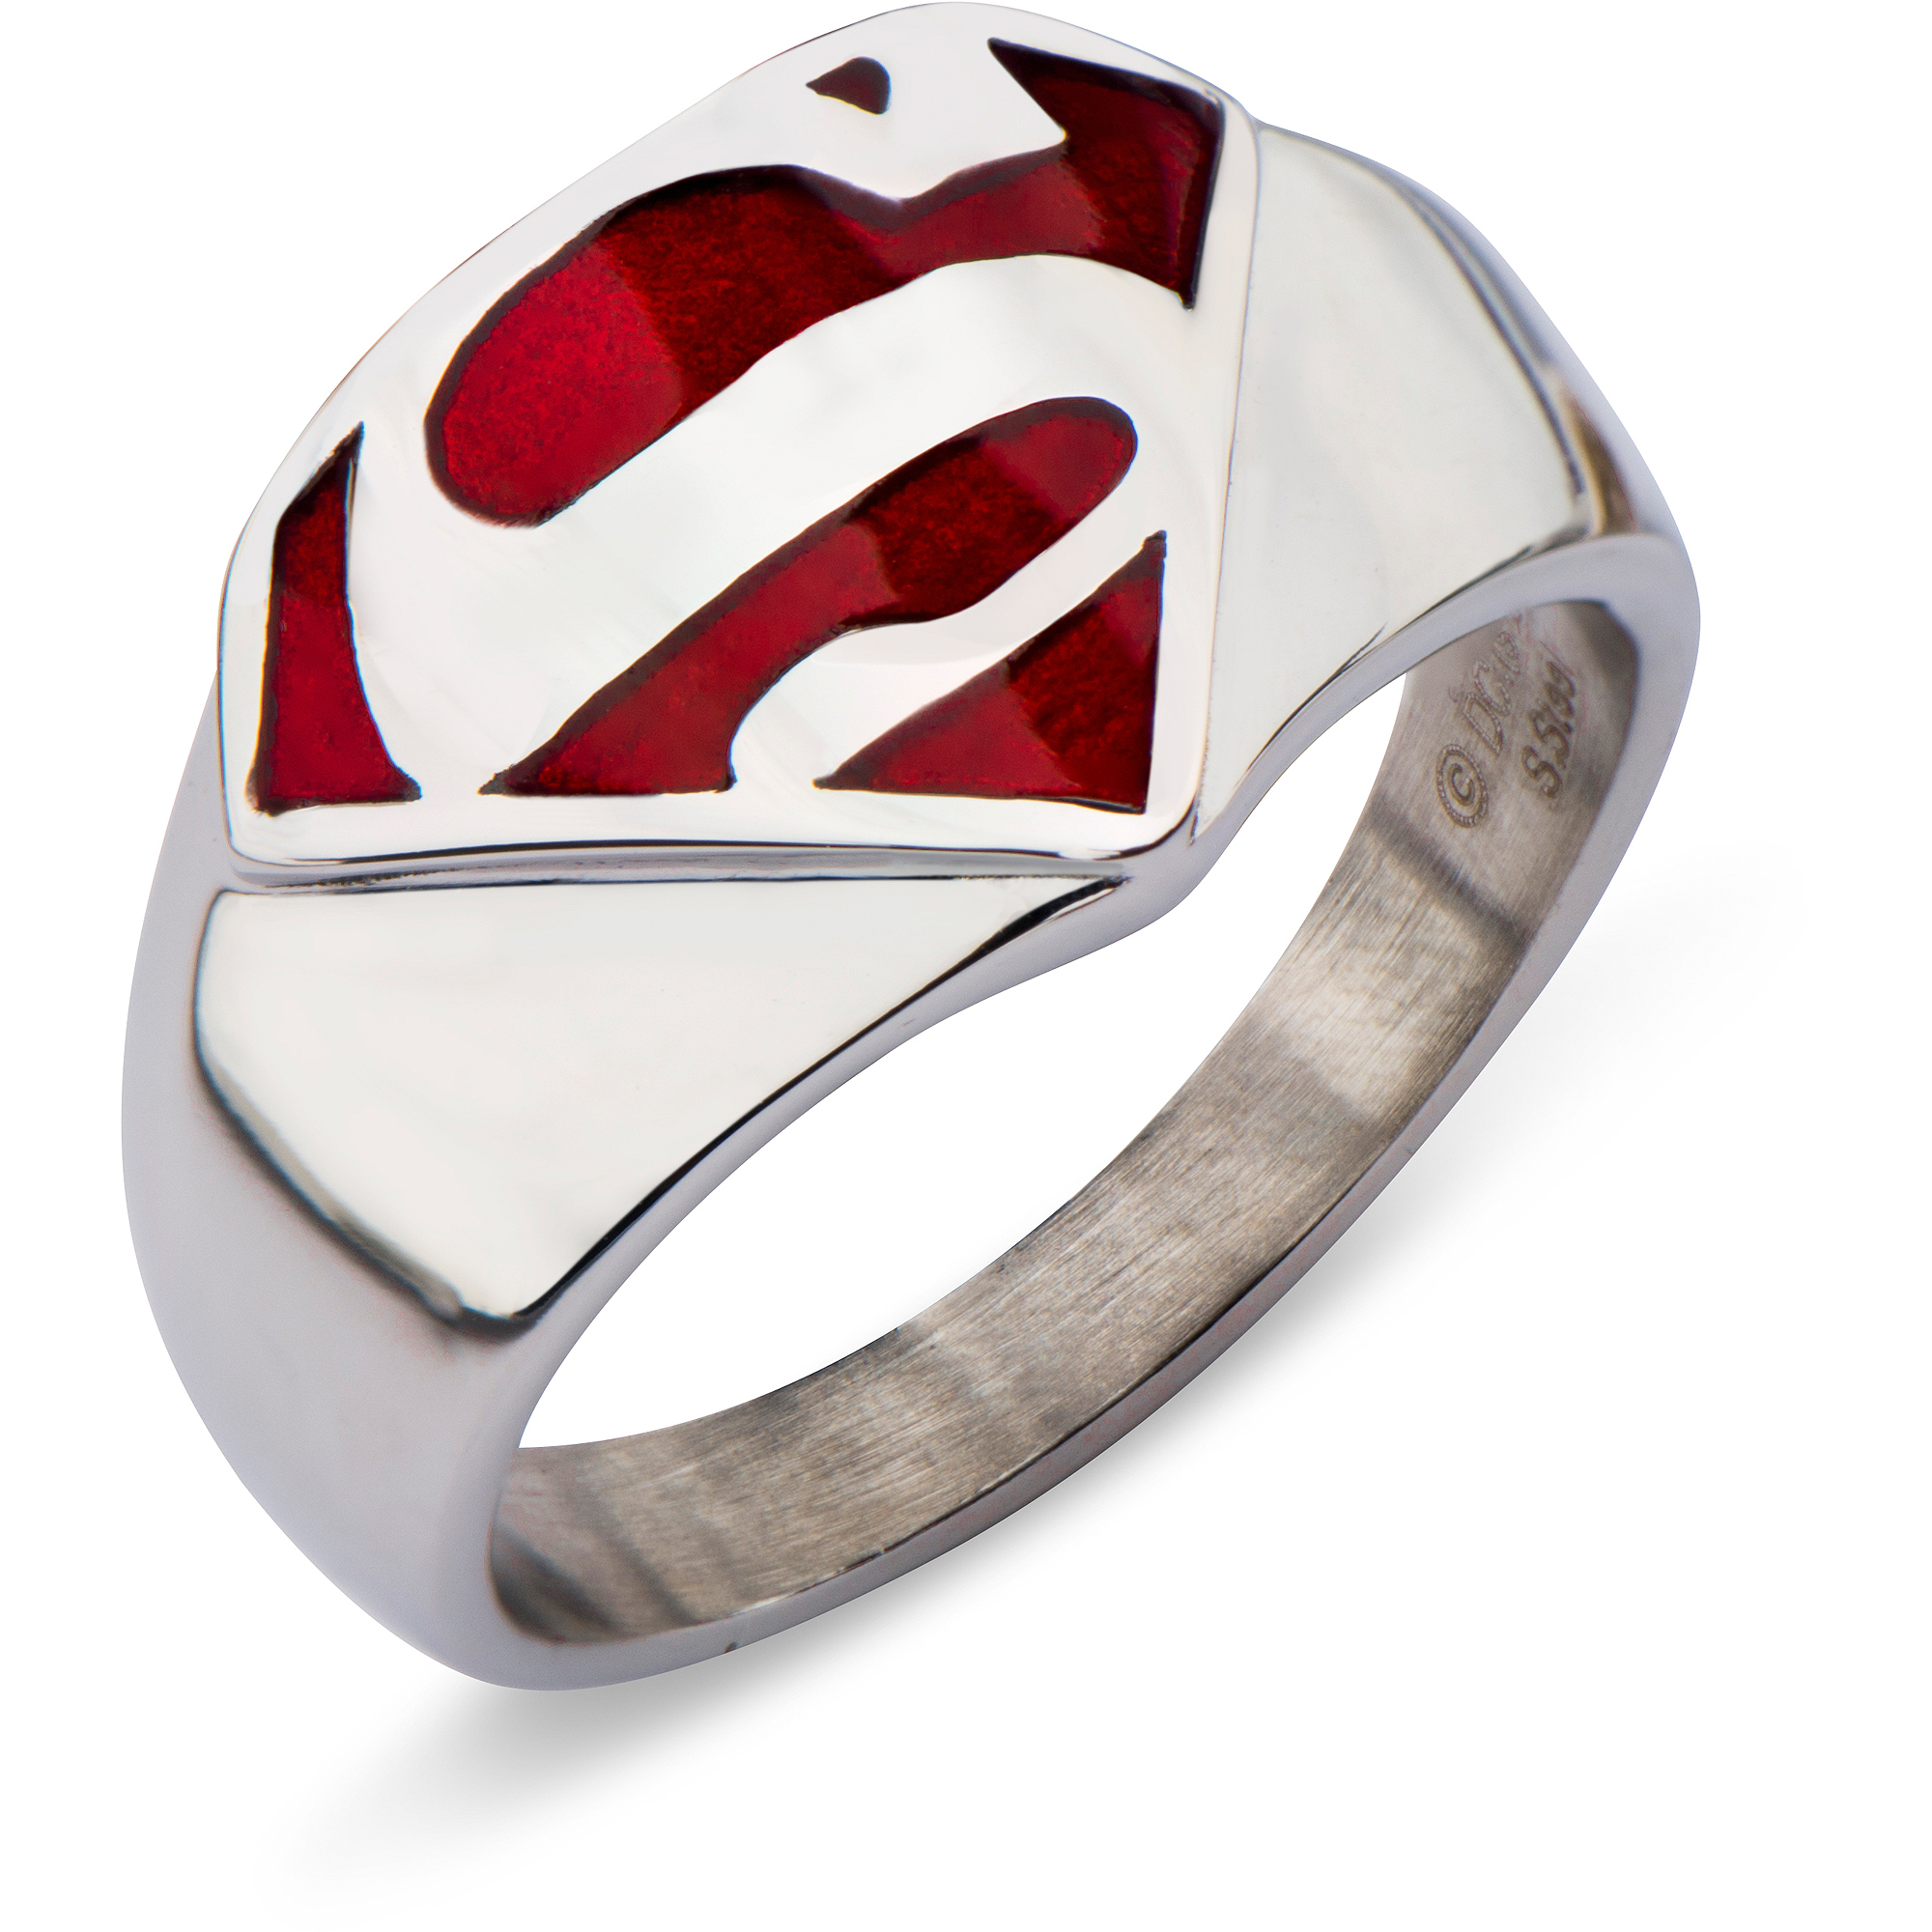 by pin rings store atlantida celje silver ring friendship male zlatarna atlantis